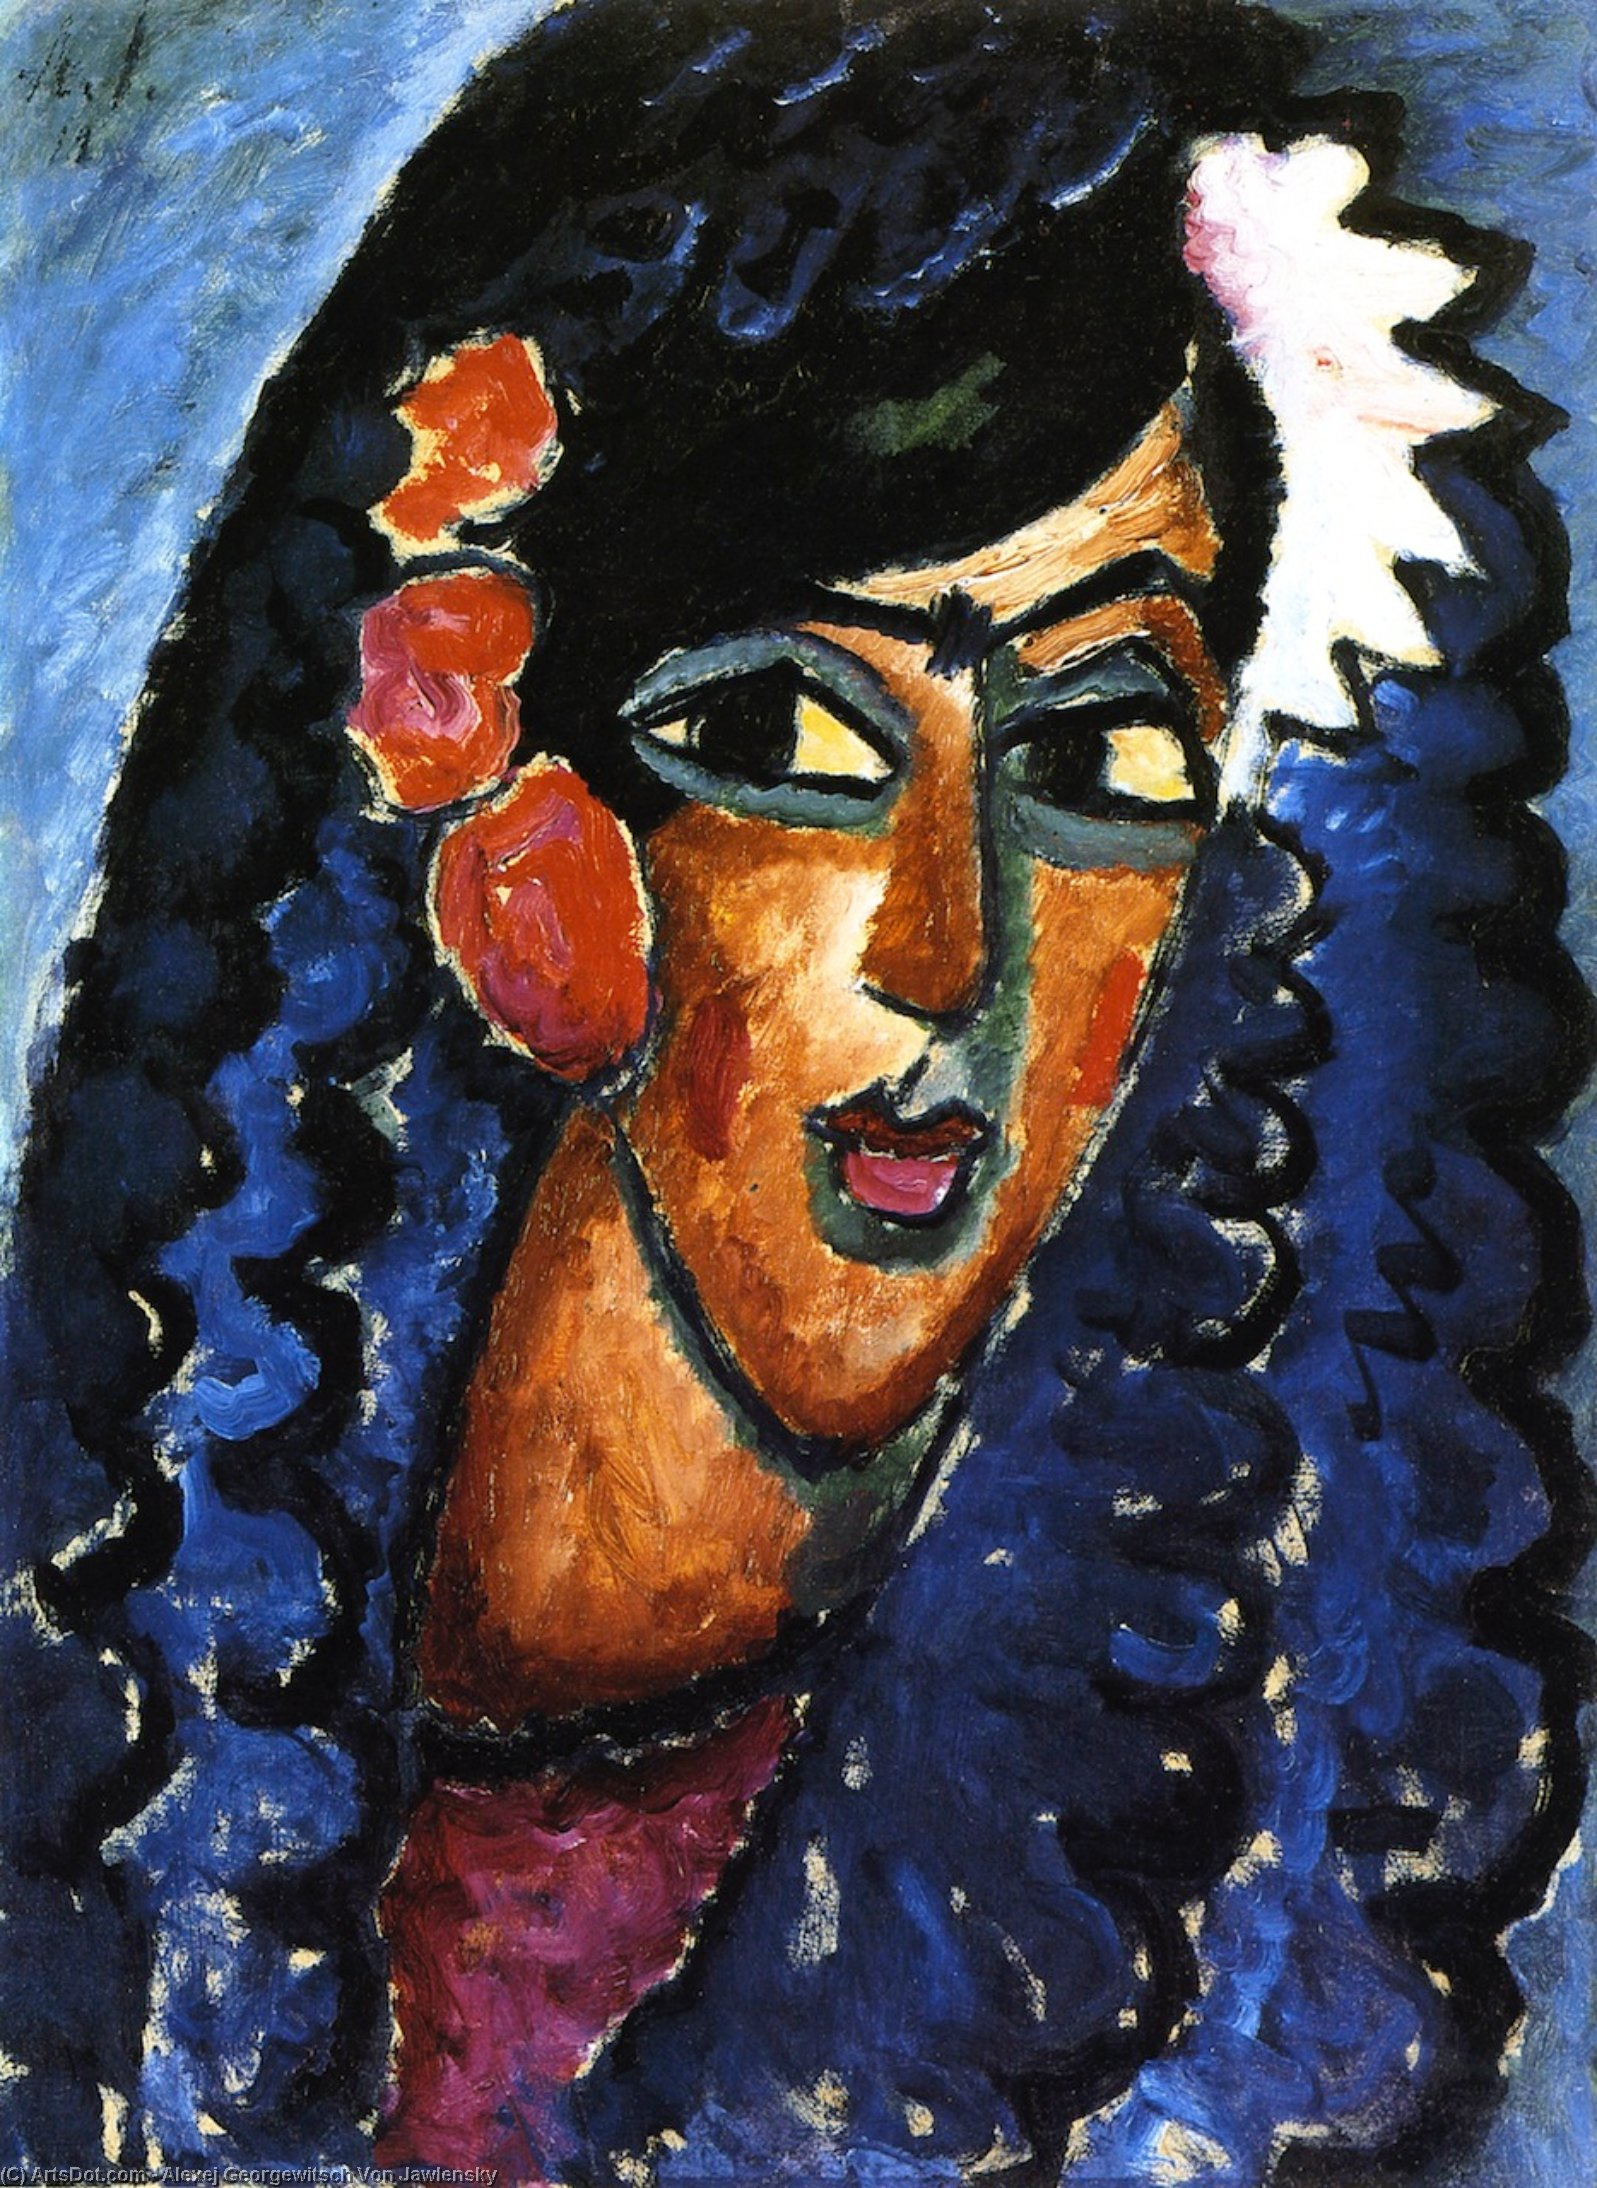 Wikioo.org - The Encyclopedia of Fine Arts - Painting, Artwork by Alexej Georgewitsch Von Jawlensky - Princess with White Flower